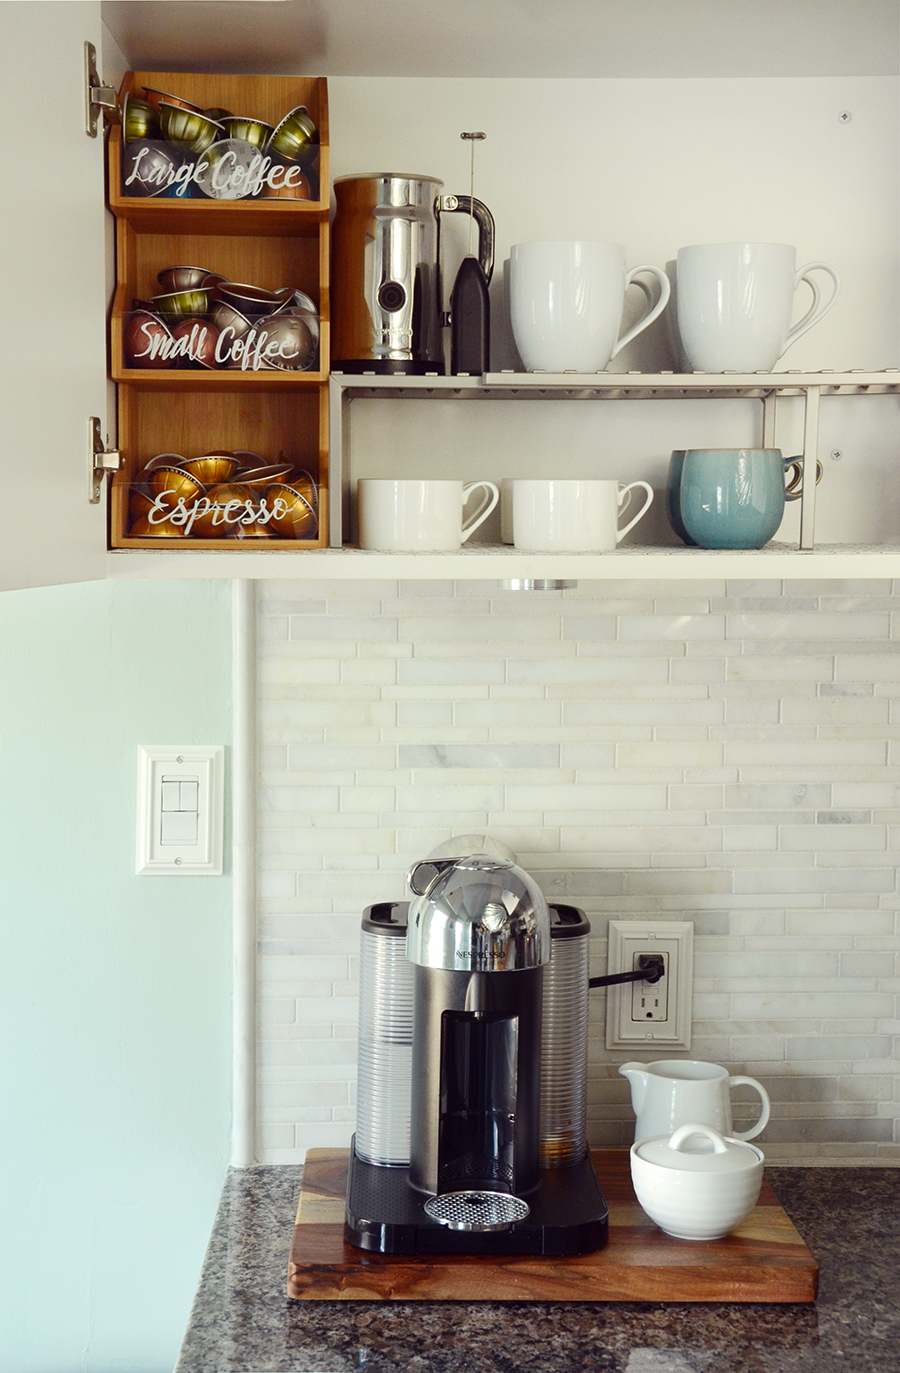 How To Make Your Own Coffee Station